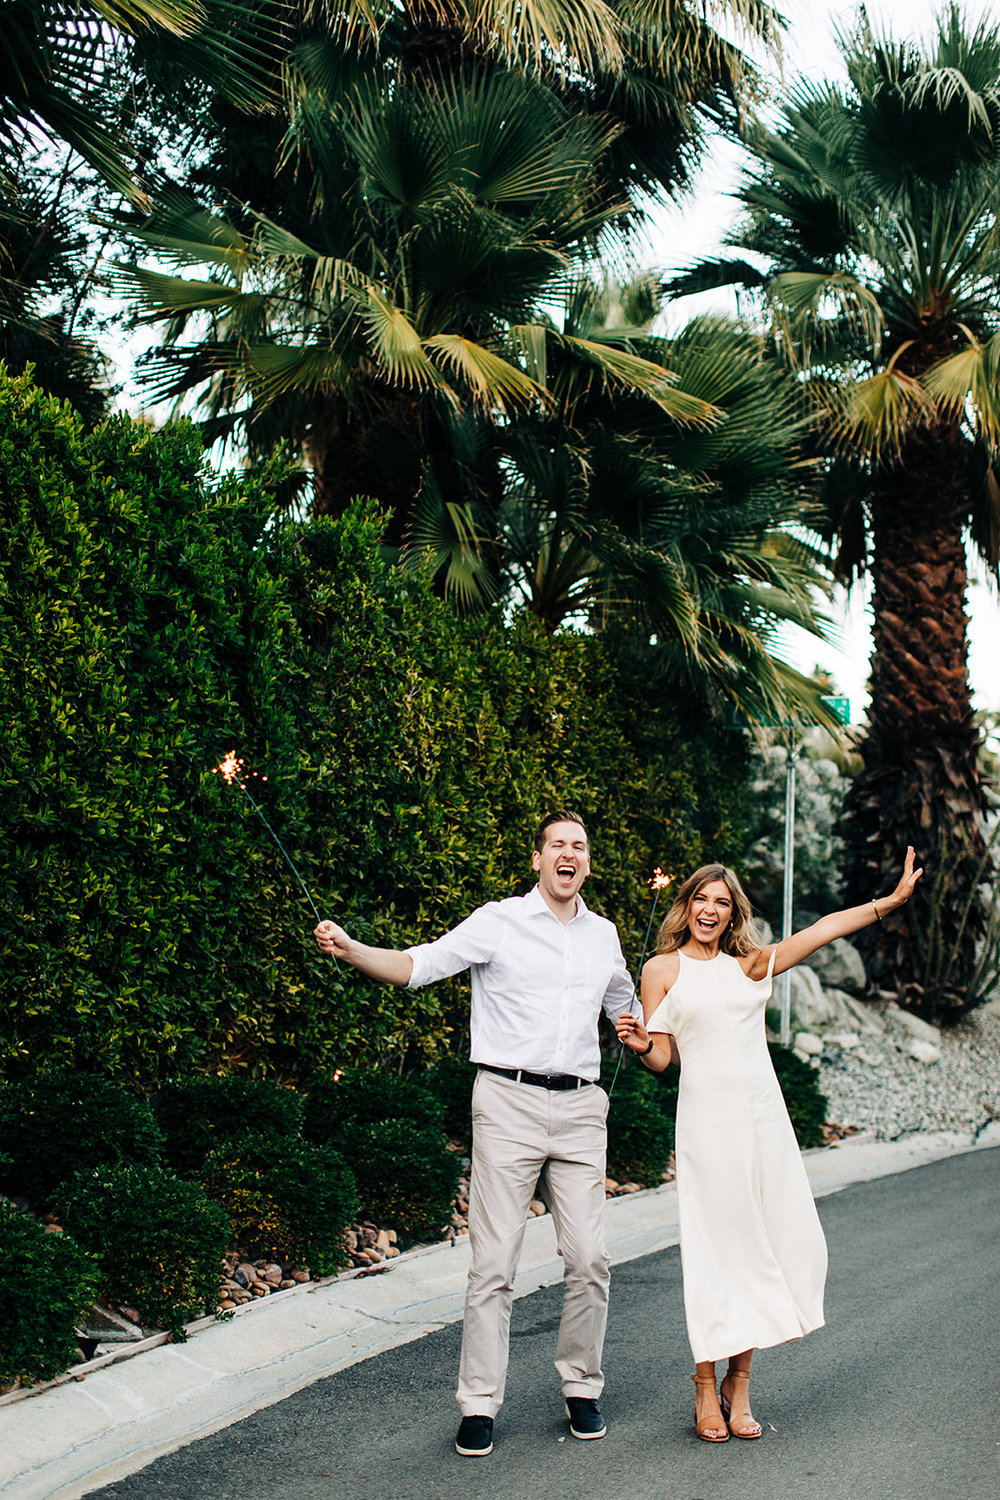 Paulina-Drew_Palm-Springs-Engagement-Photos_Clarisse-Rae_Southern-California-Wedding-Photographer-47